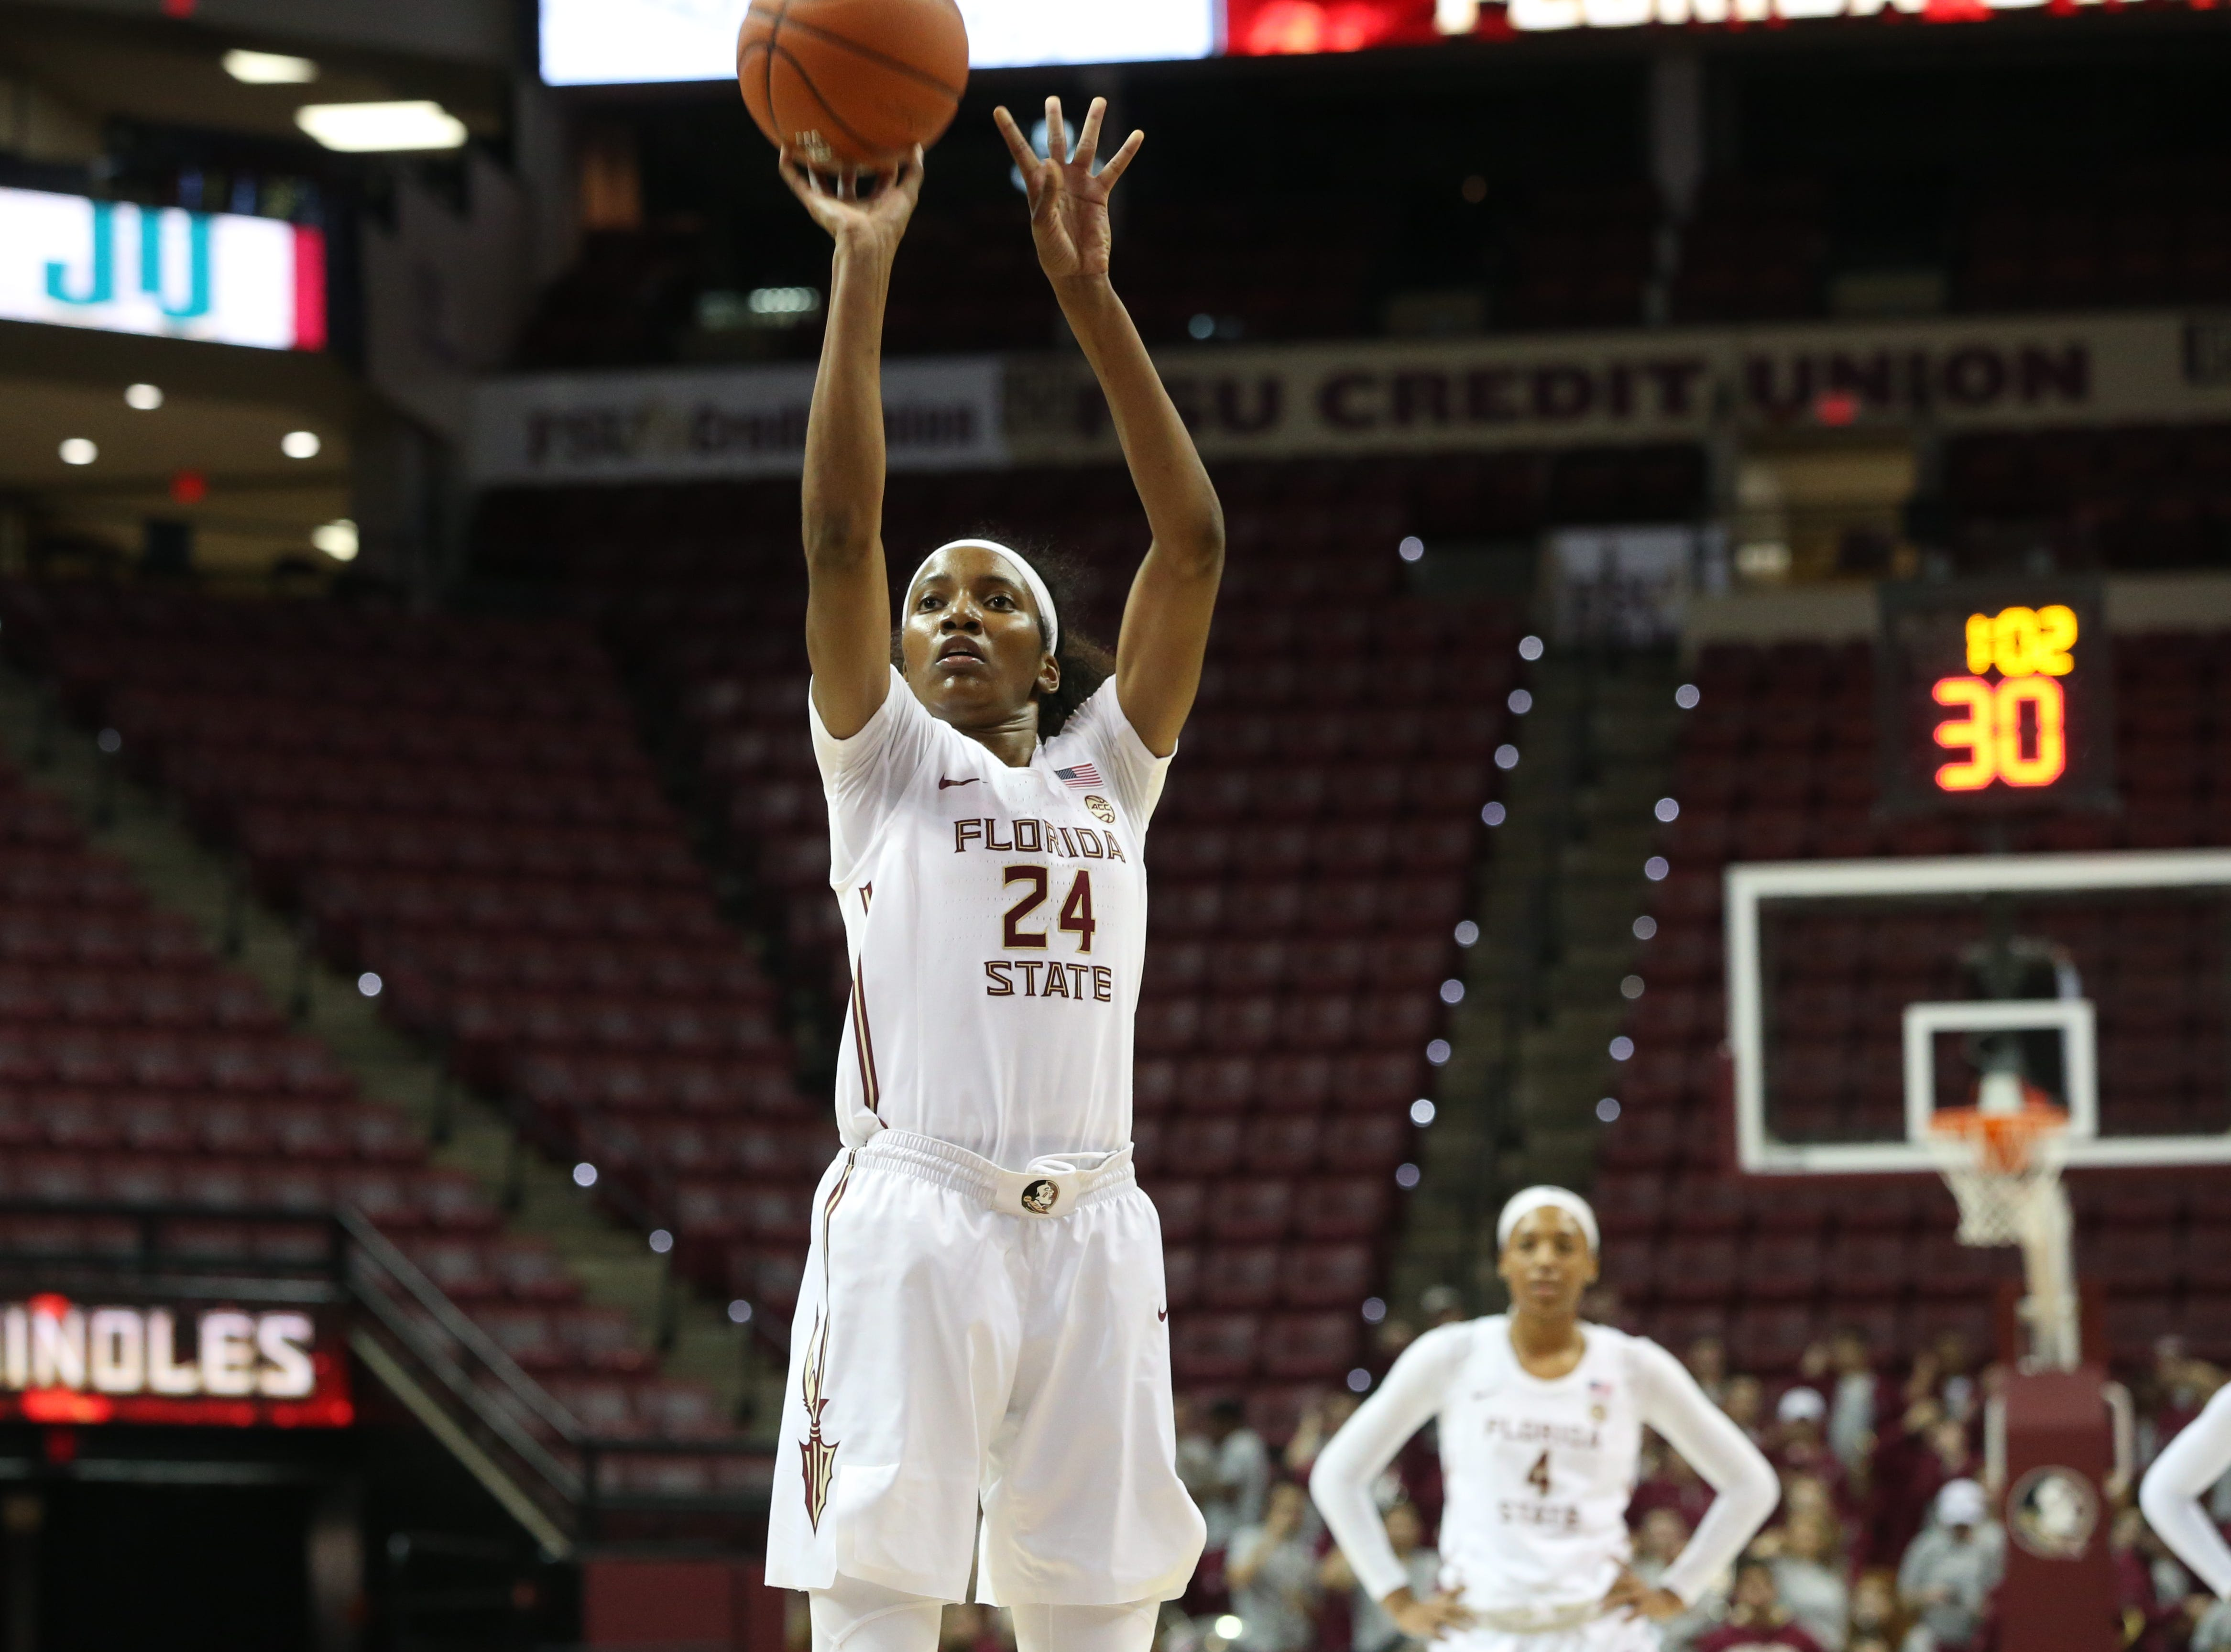 Strong perimeter shooting boosts Florida State past Jacksonville